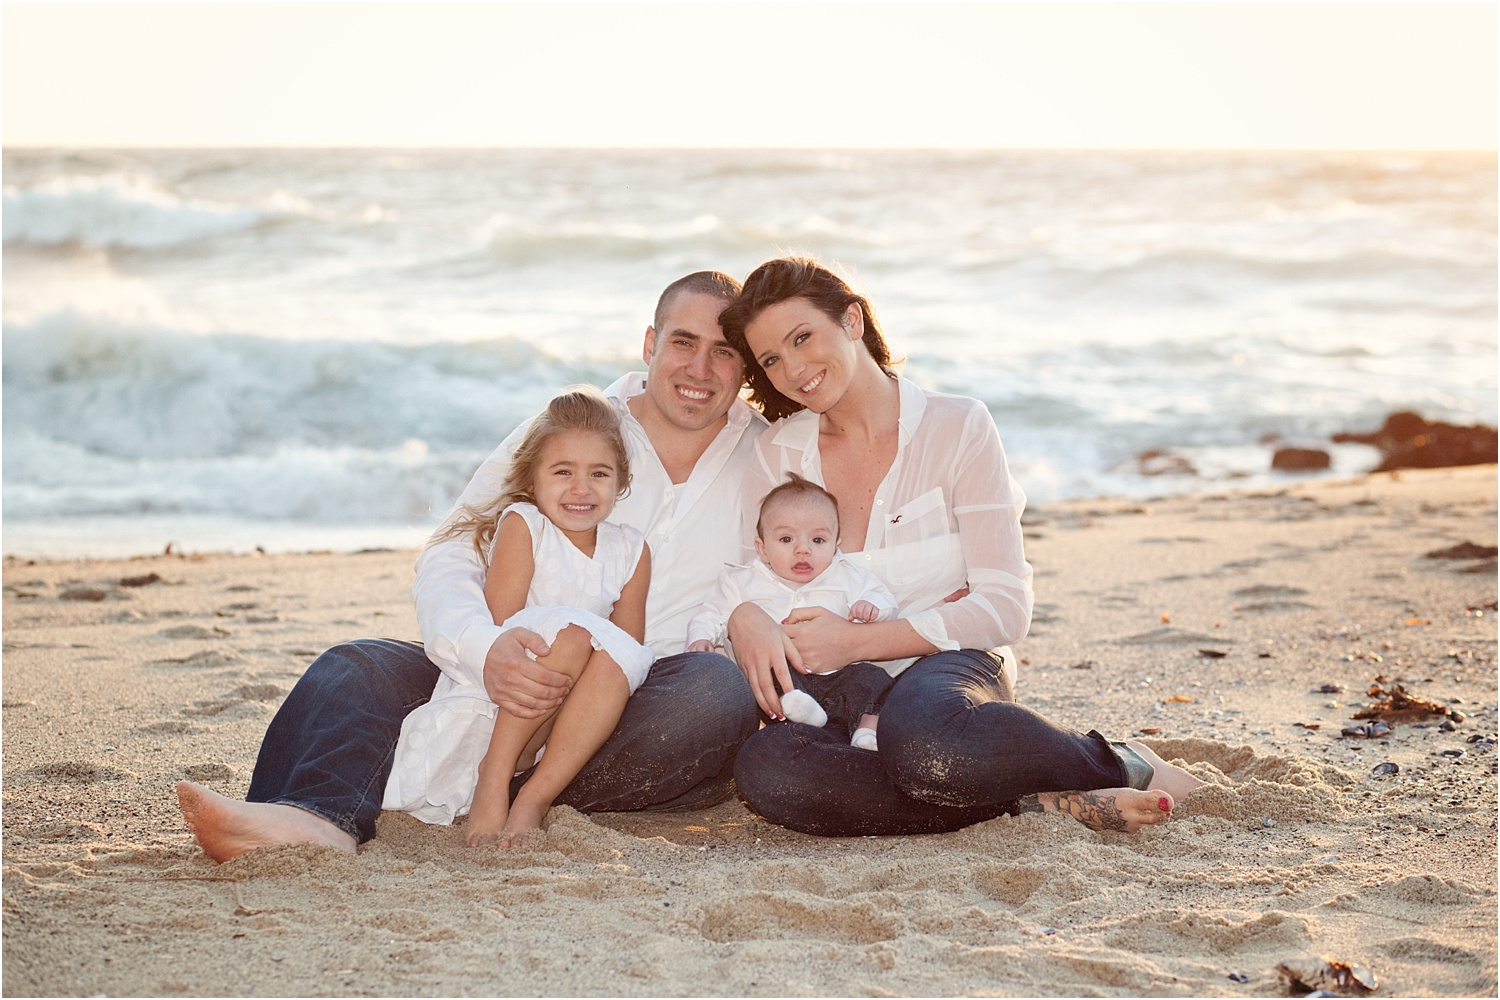 family in white on the beach - Using Flash for Beach Portraits